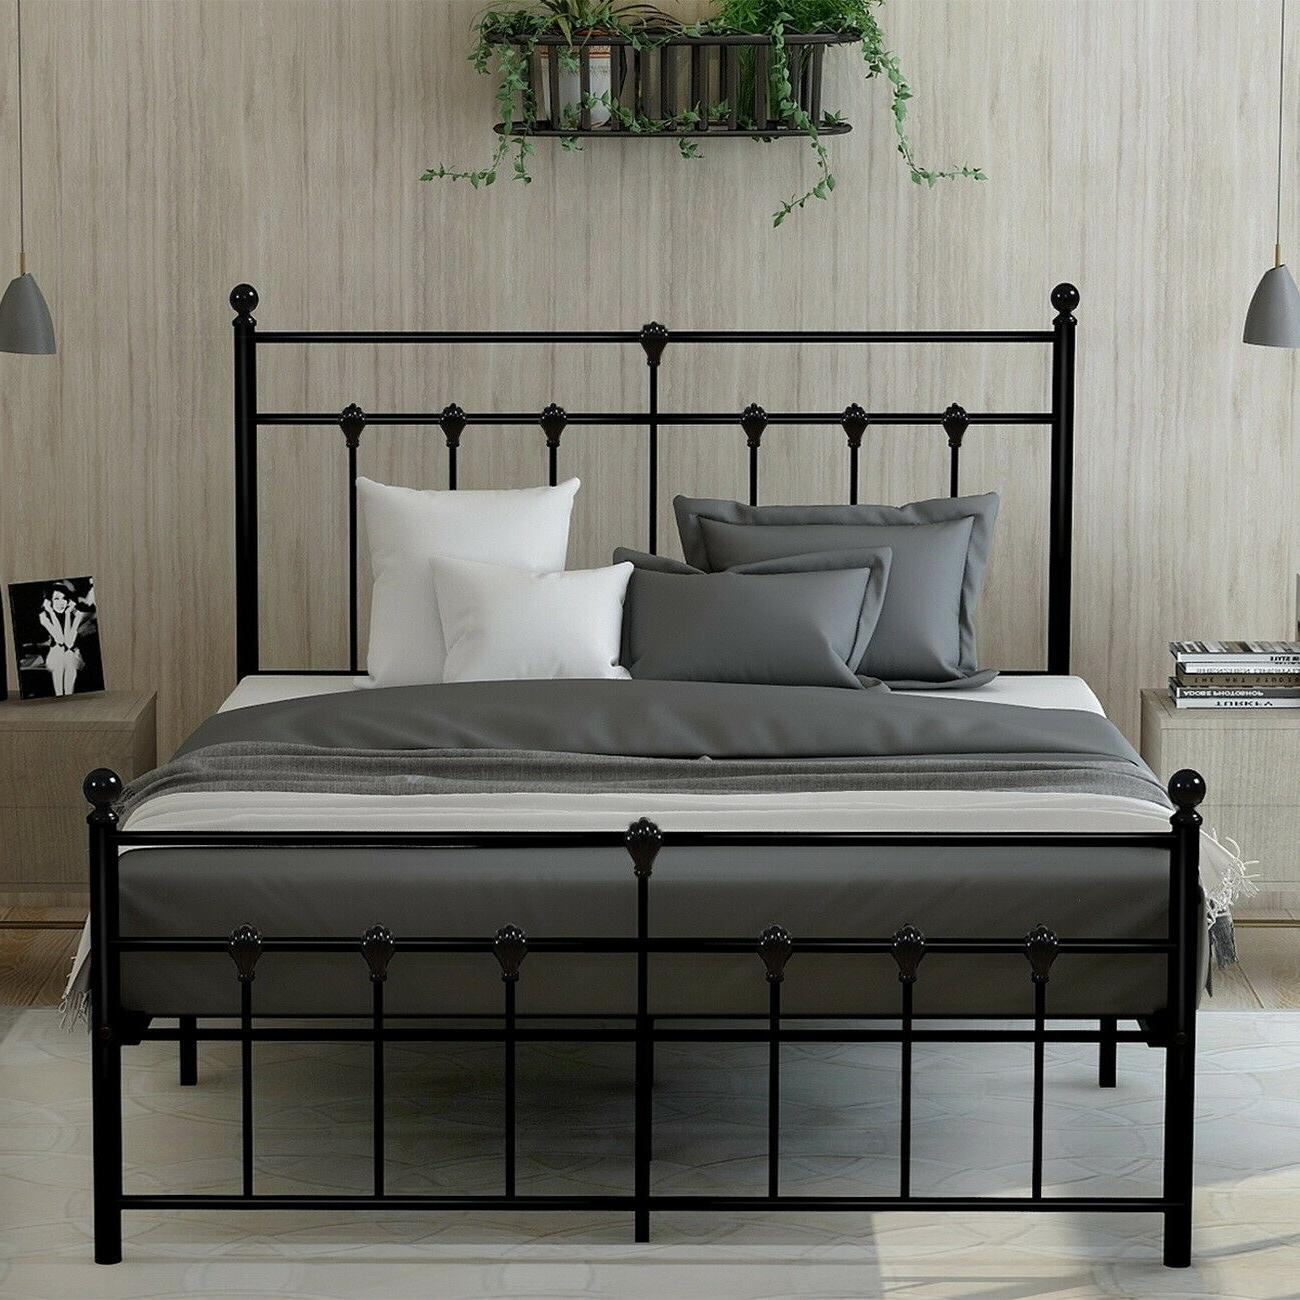 No Spring Metal Bed Frame Headboard and Home Furniture